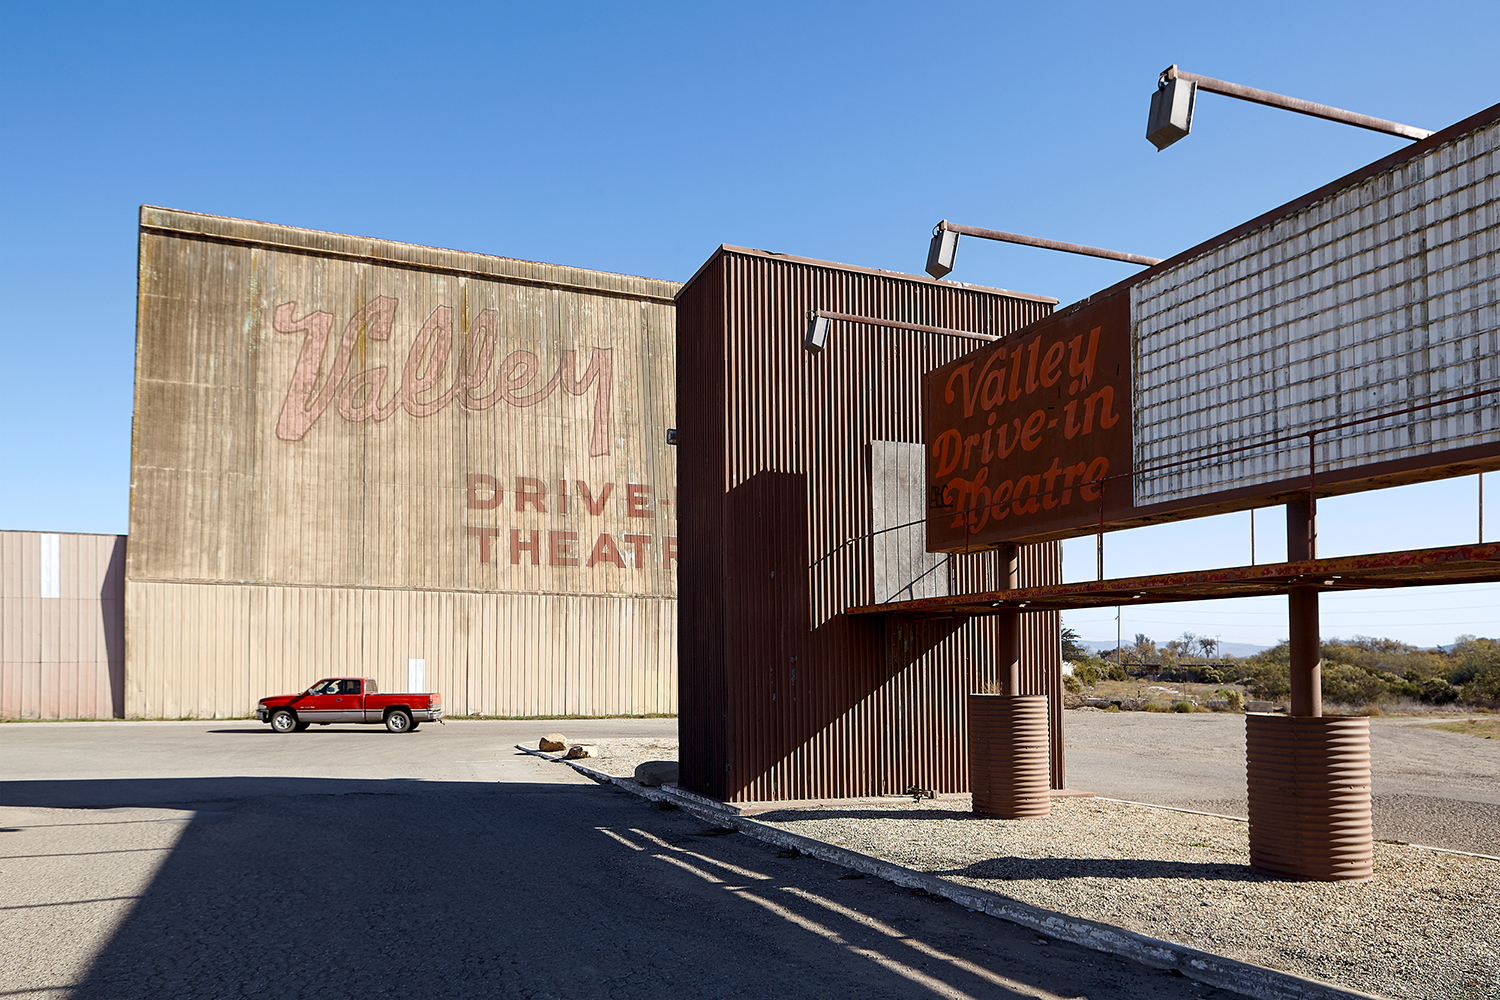 Drive-in Theatre near Vandenberg Air Force Base